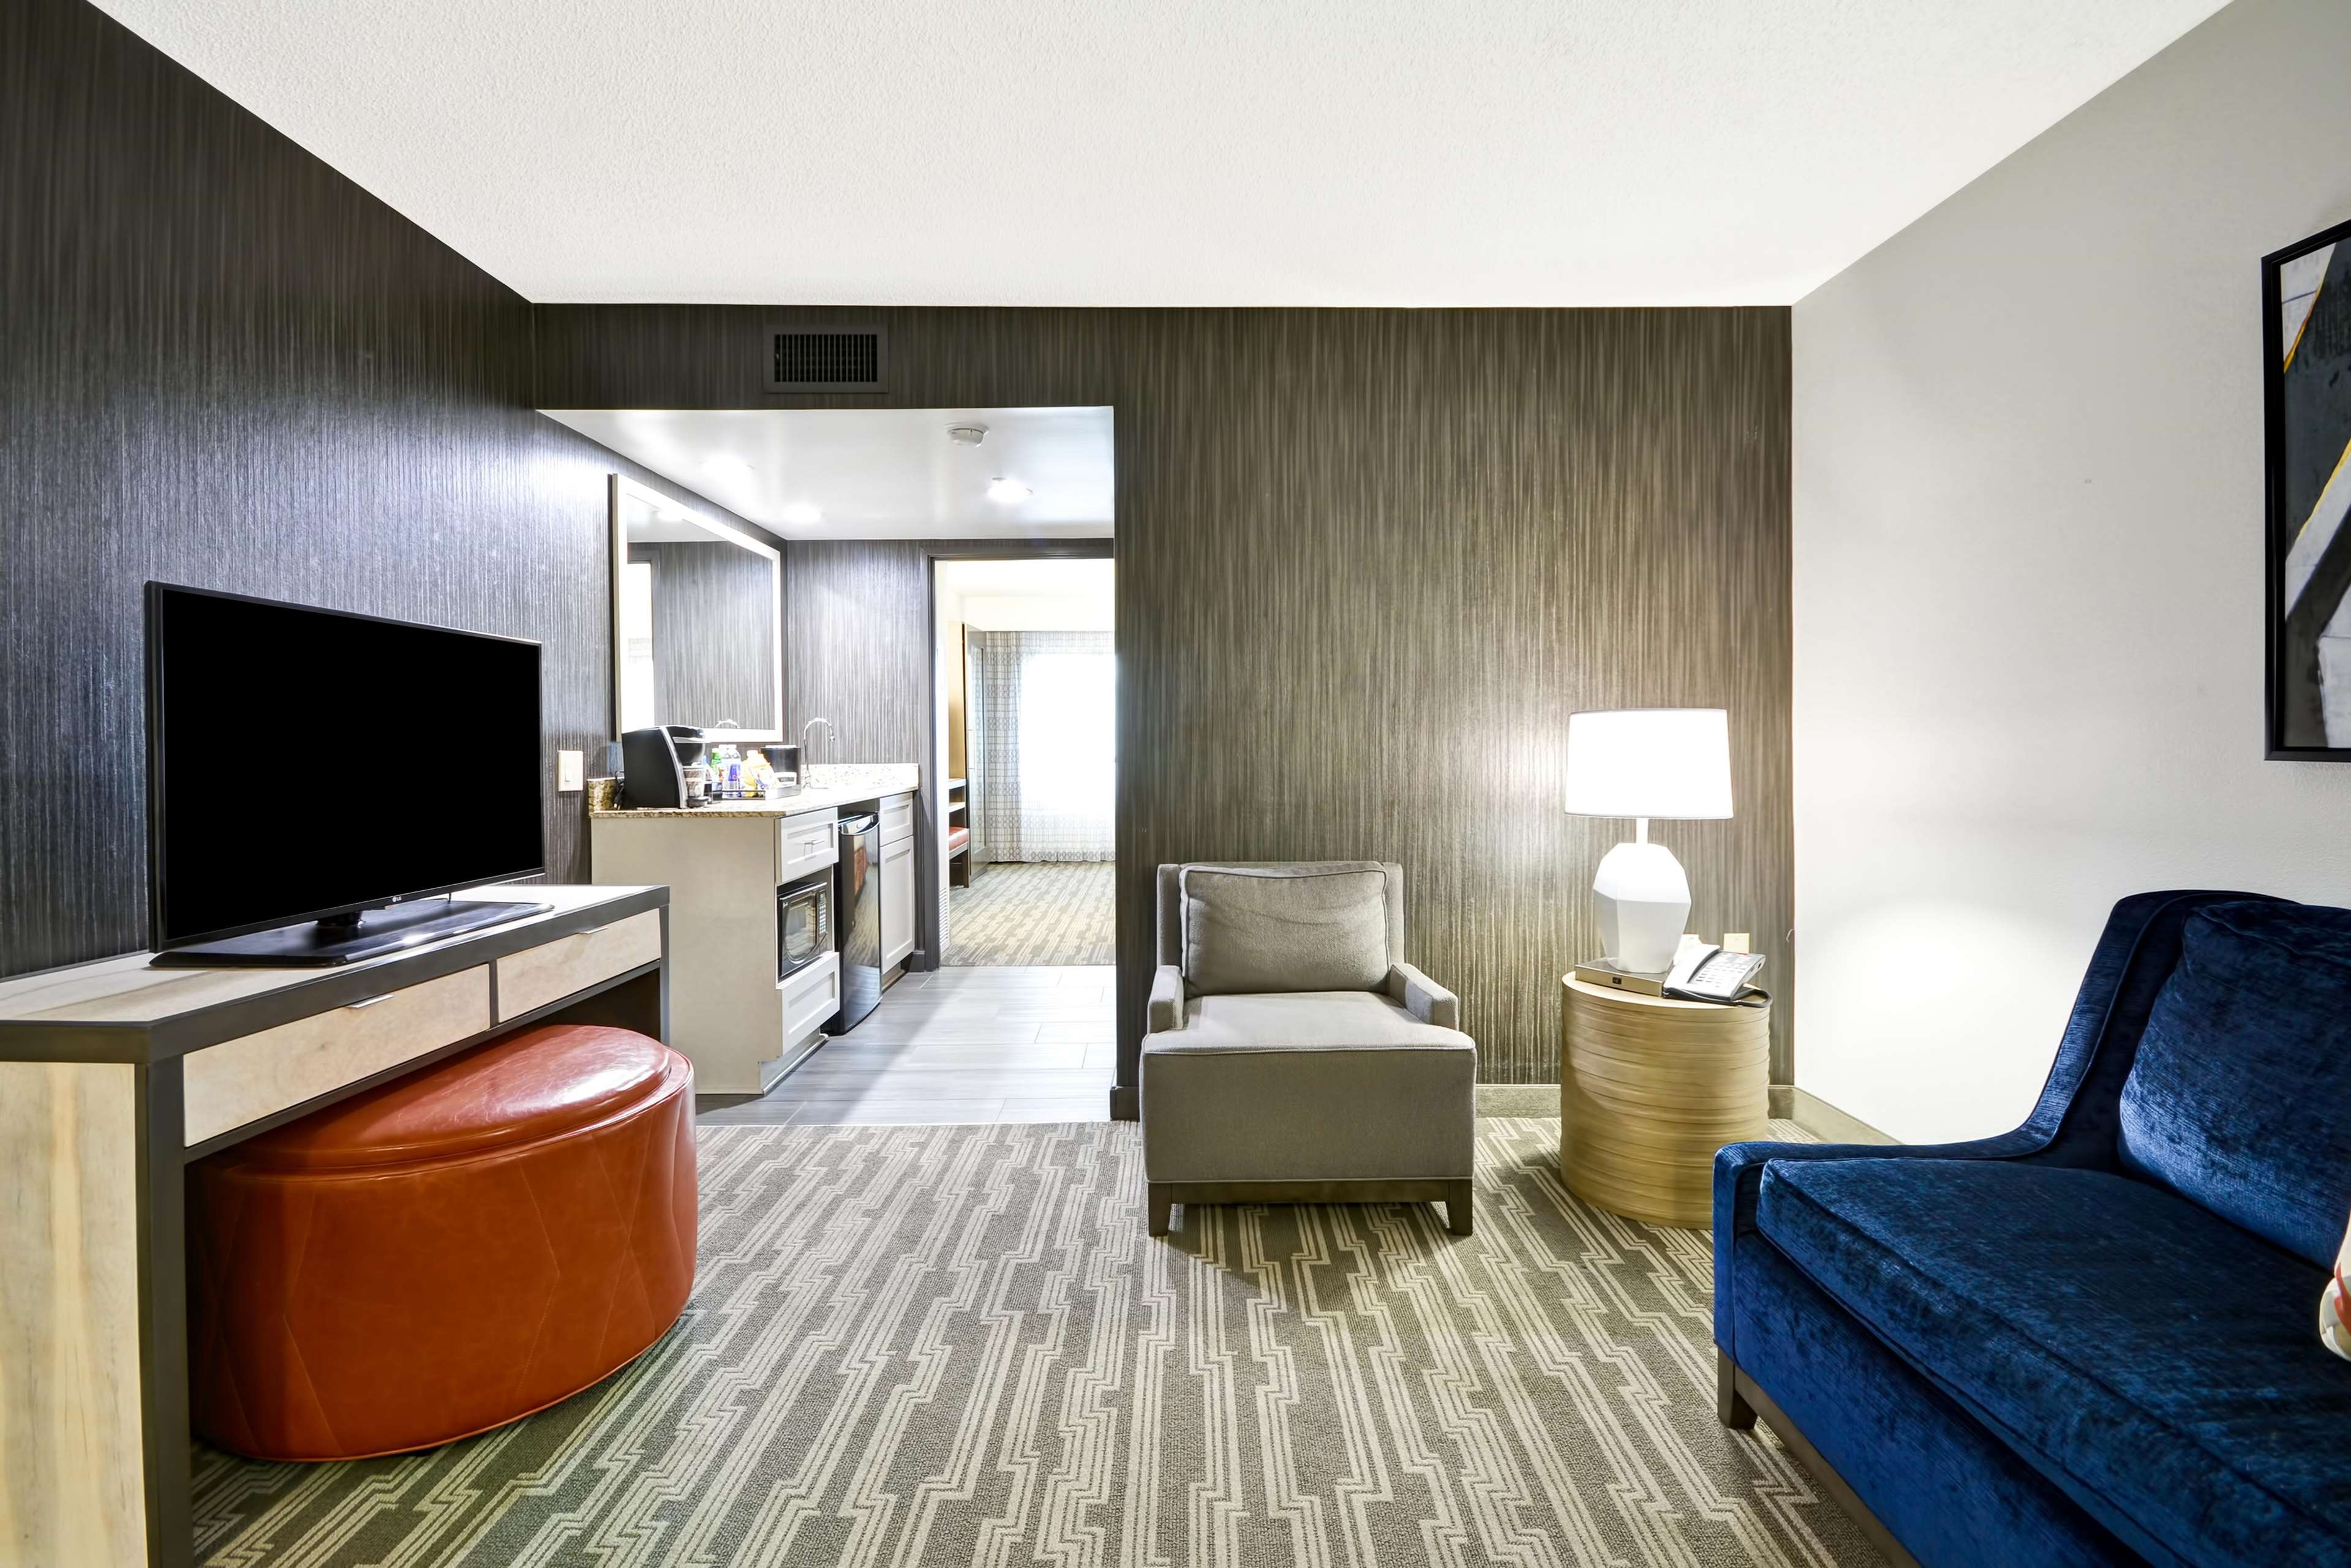 Age To Rent Hotel Room In Nc